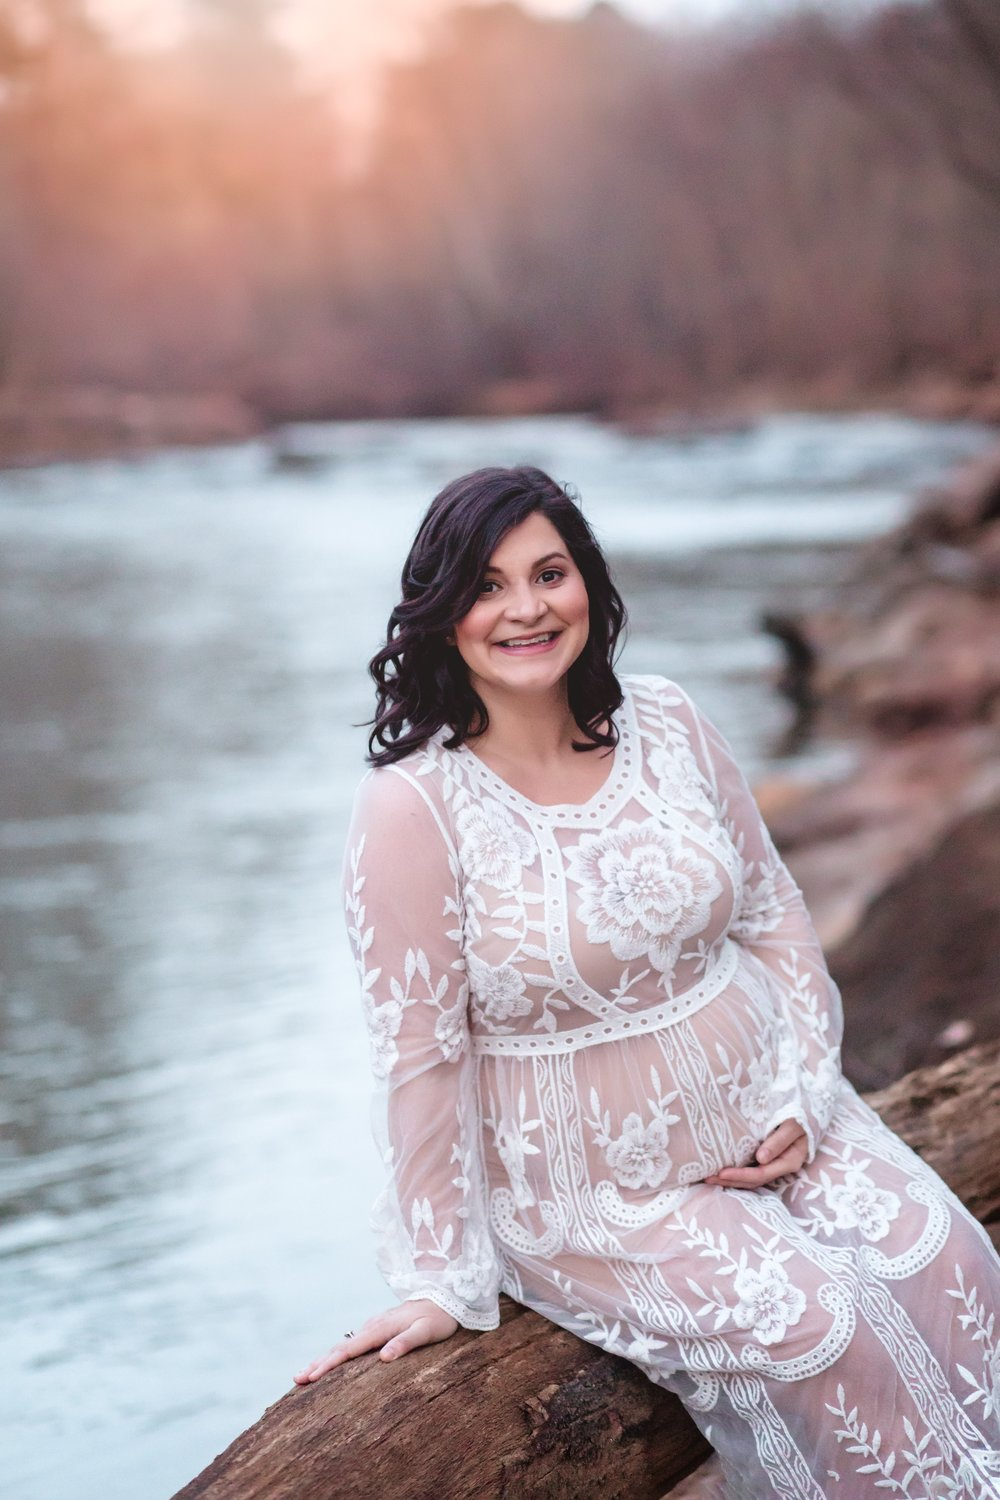 Woodstock Maternity Photographer_0014.jpg